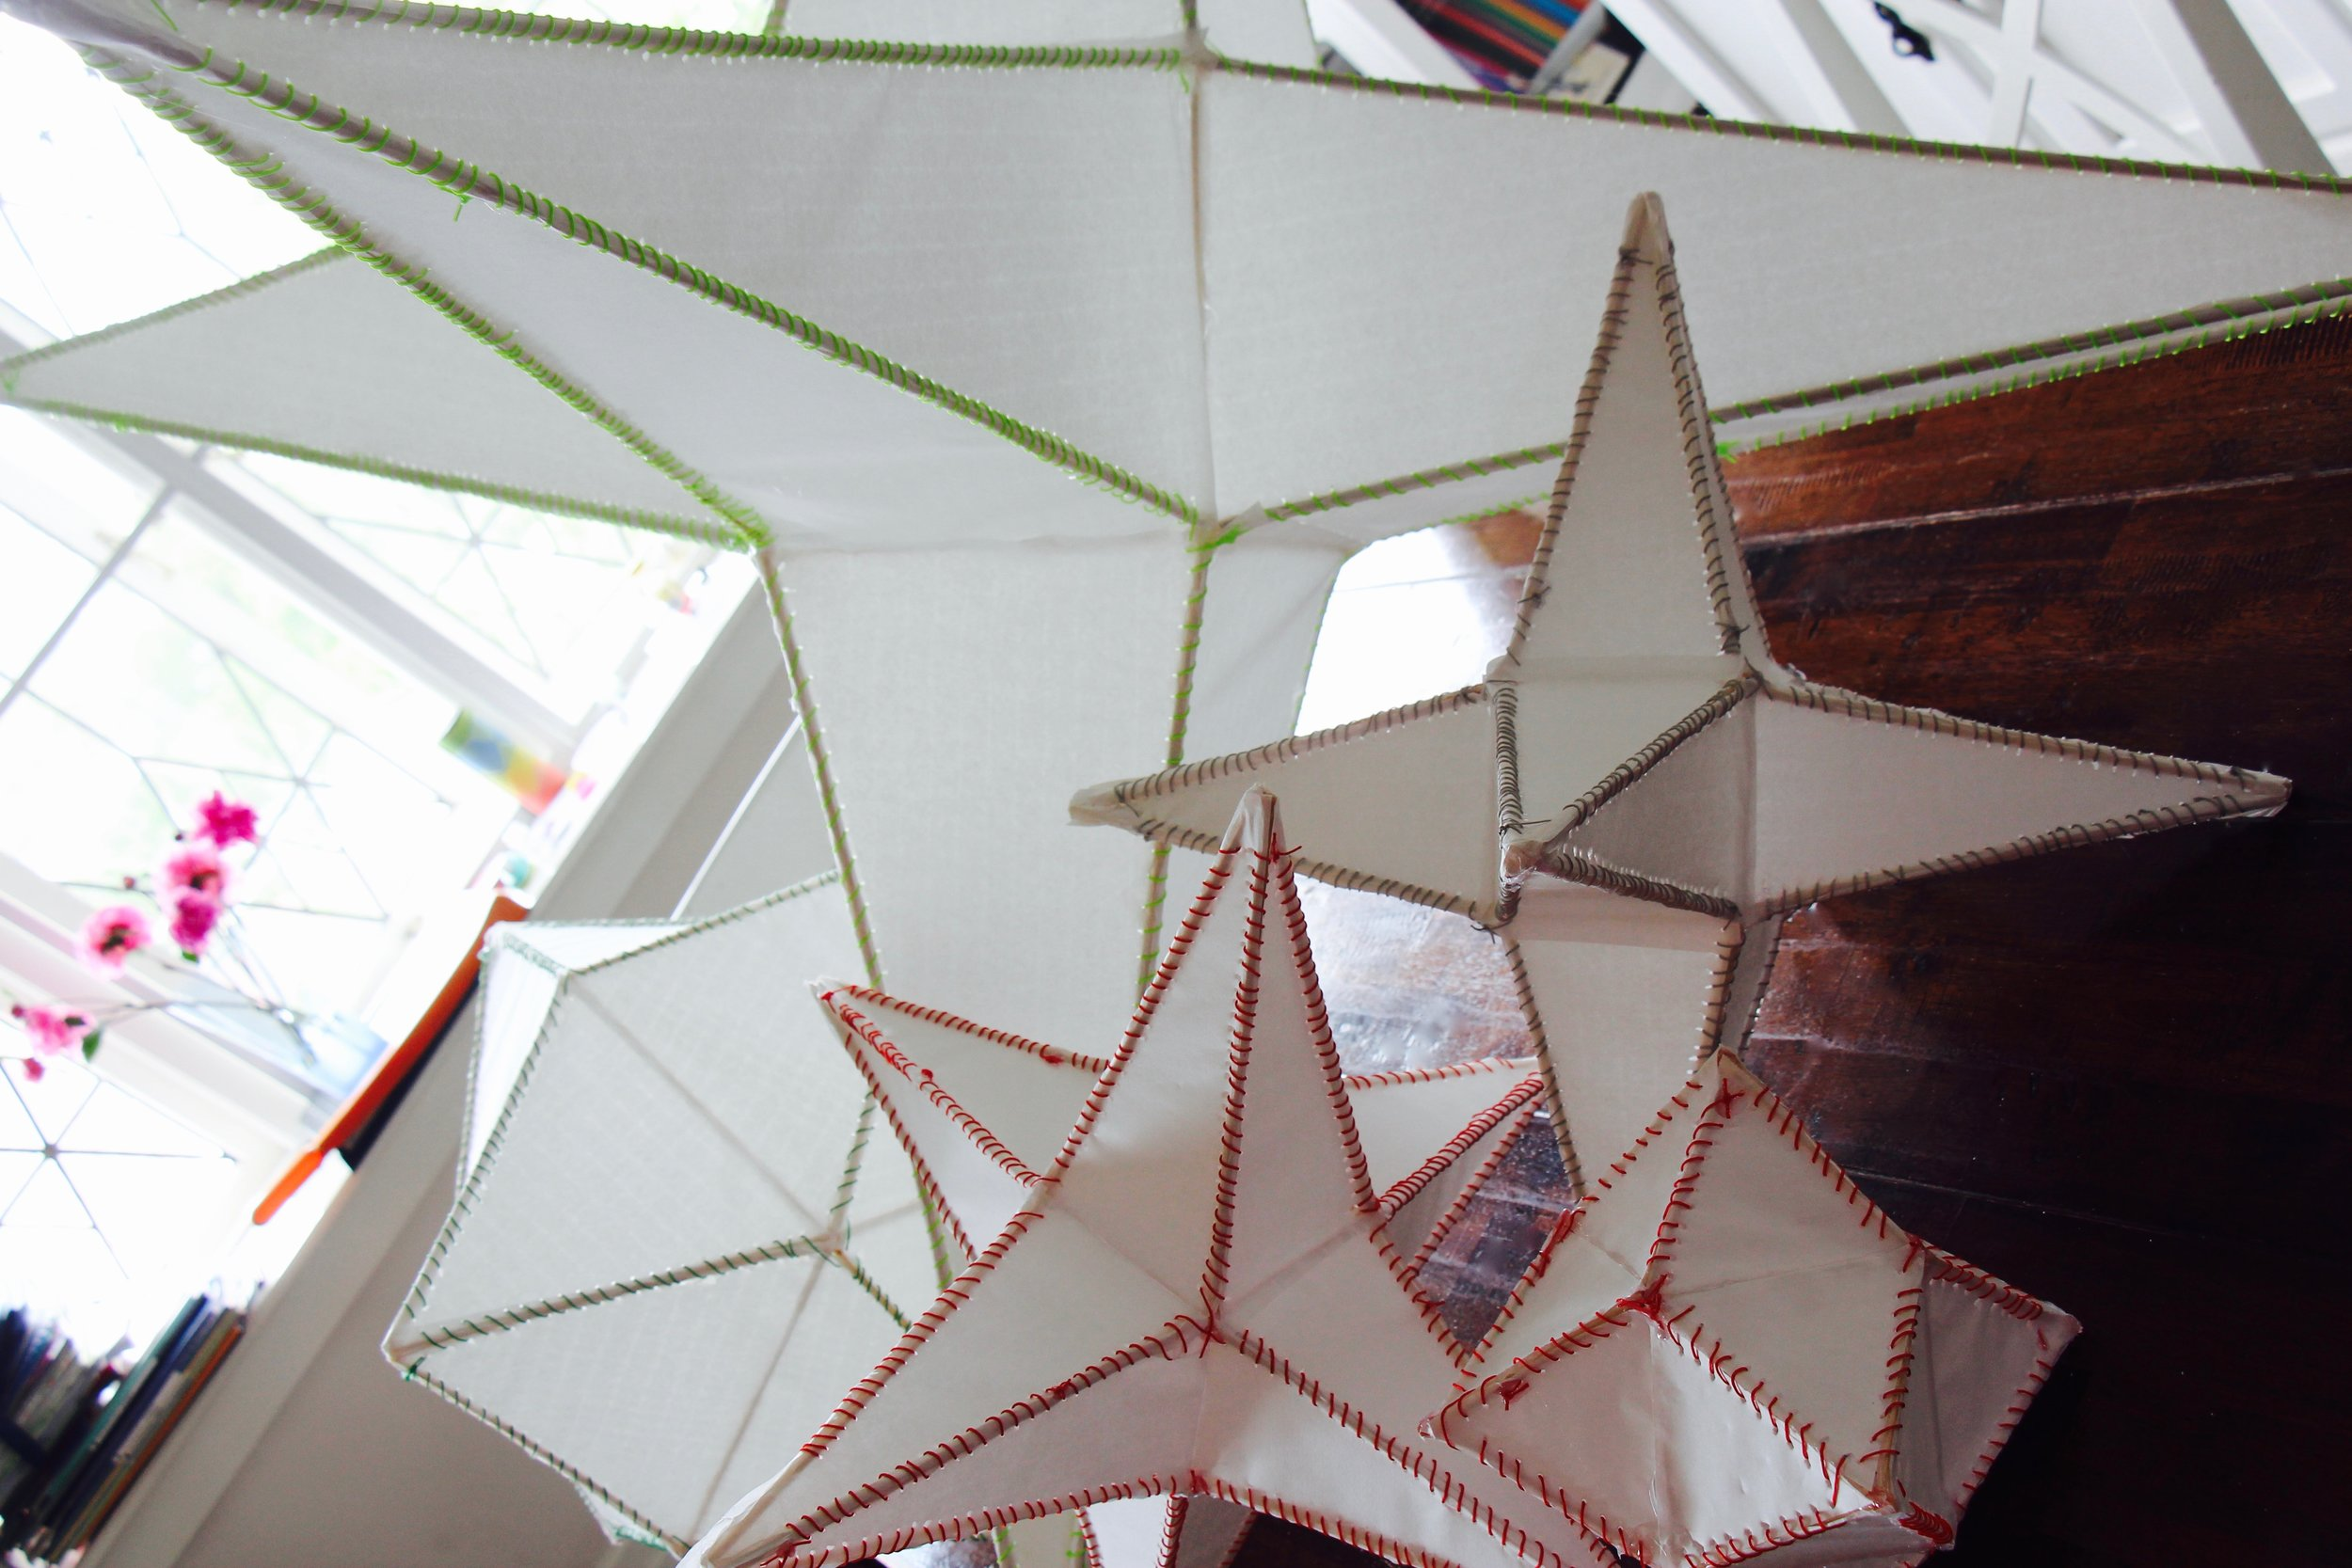 Star lanterns taking shape with colourful stitching ...